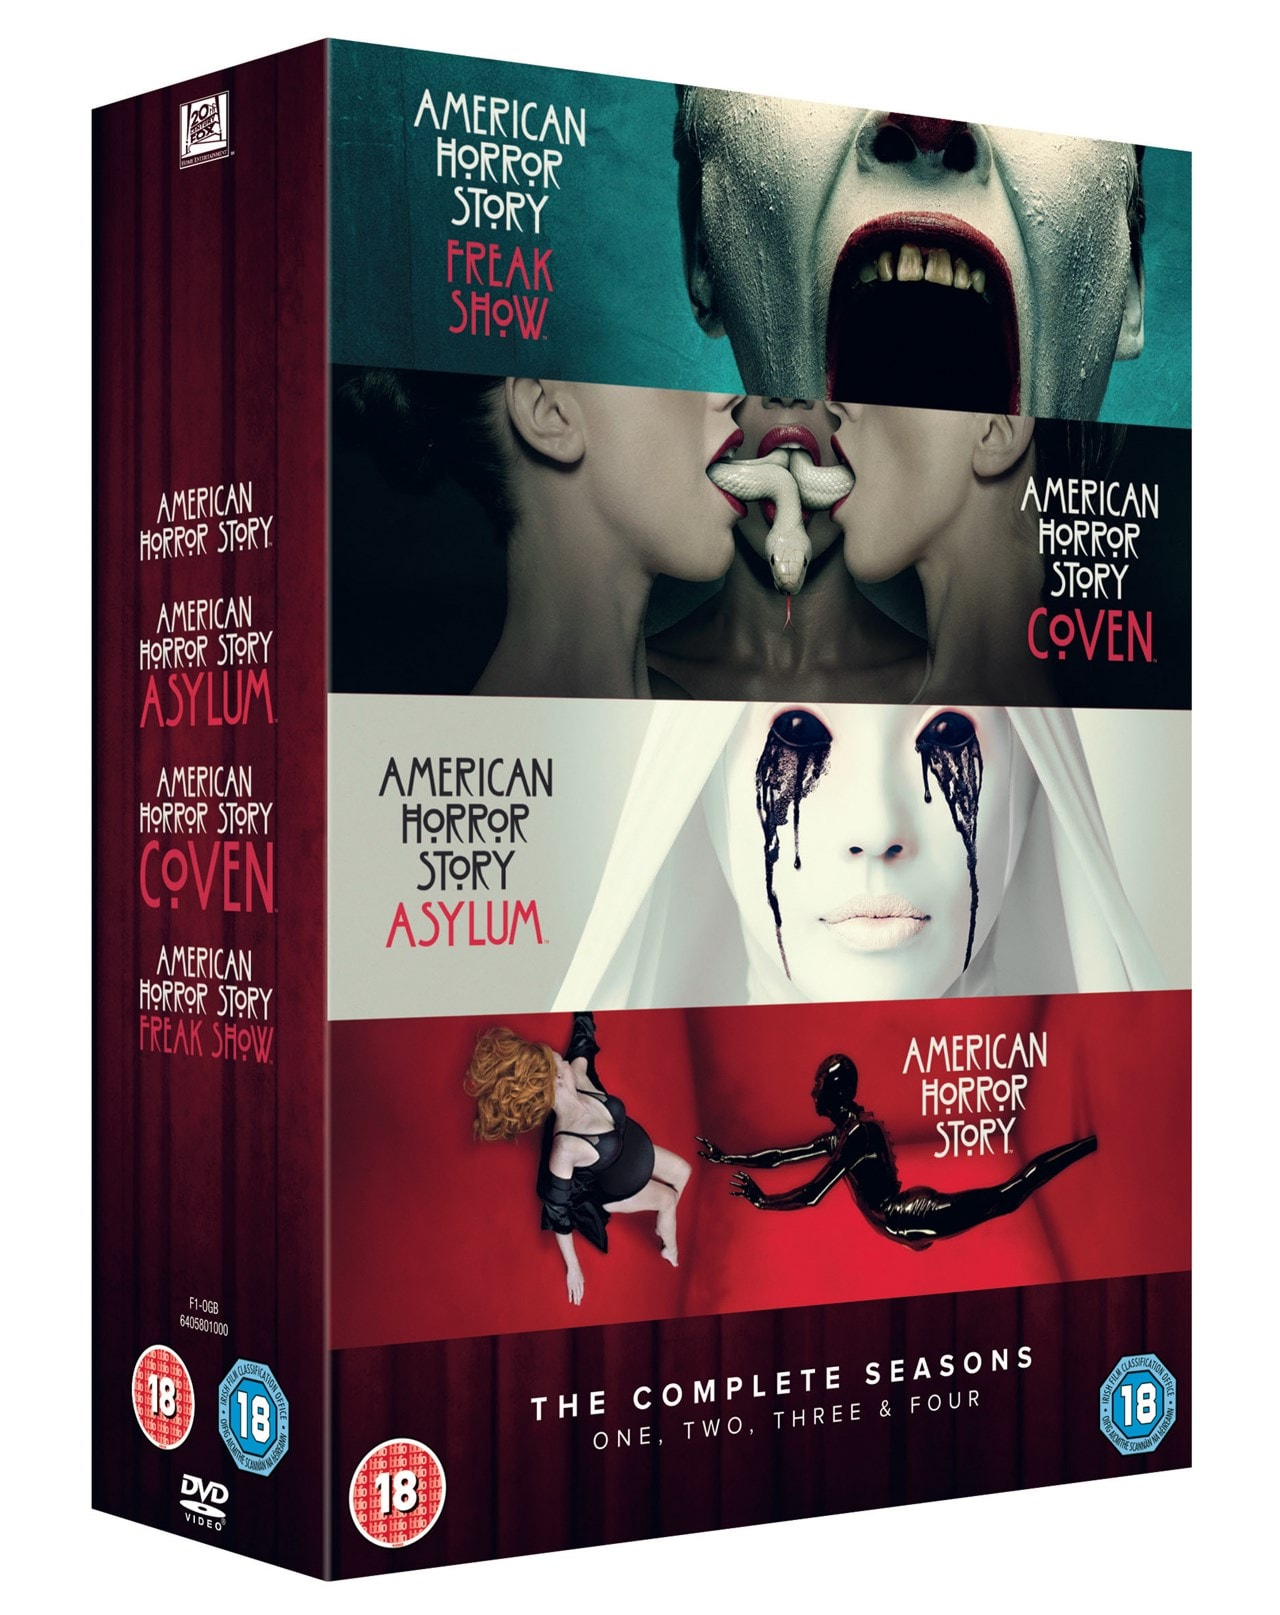 American Horror Story: Complete Seasons One, Two, Three & Four - 1